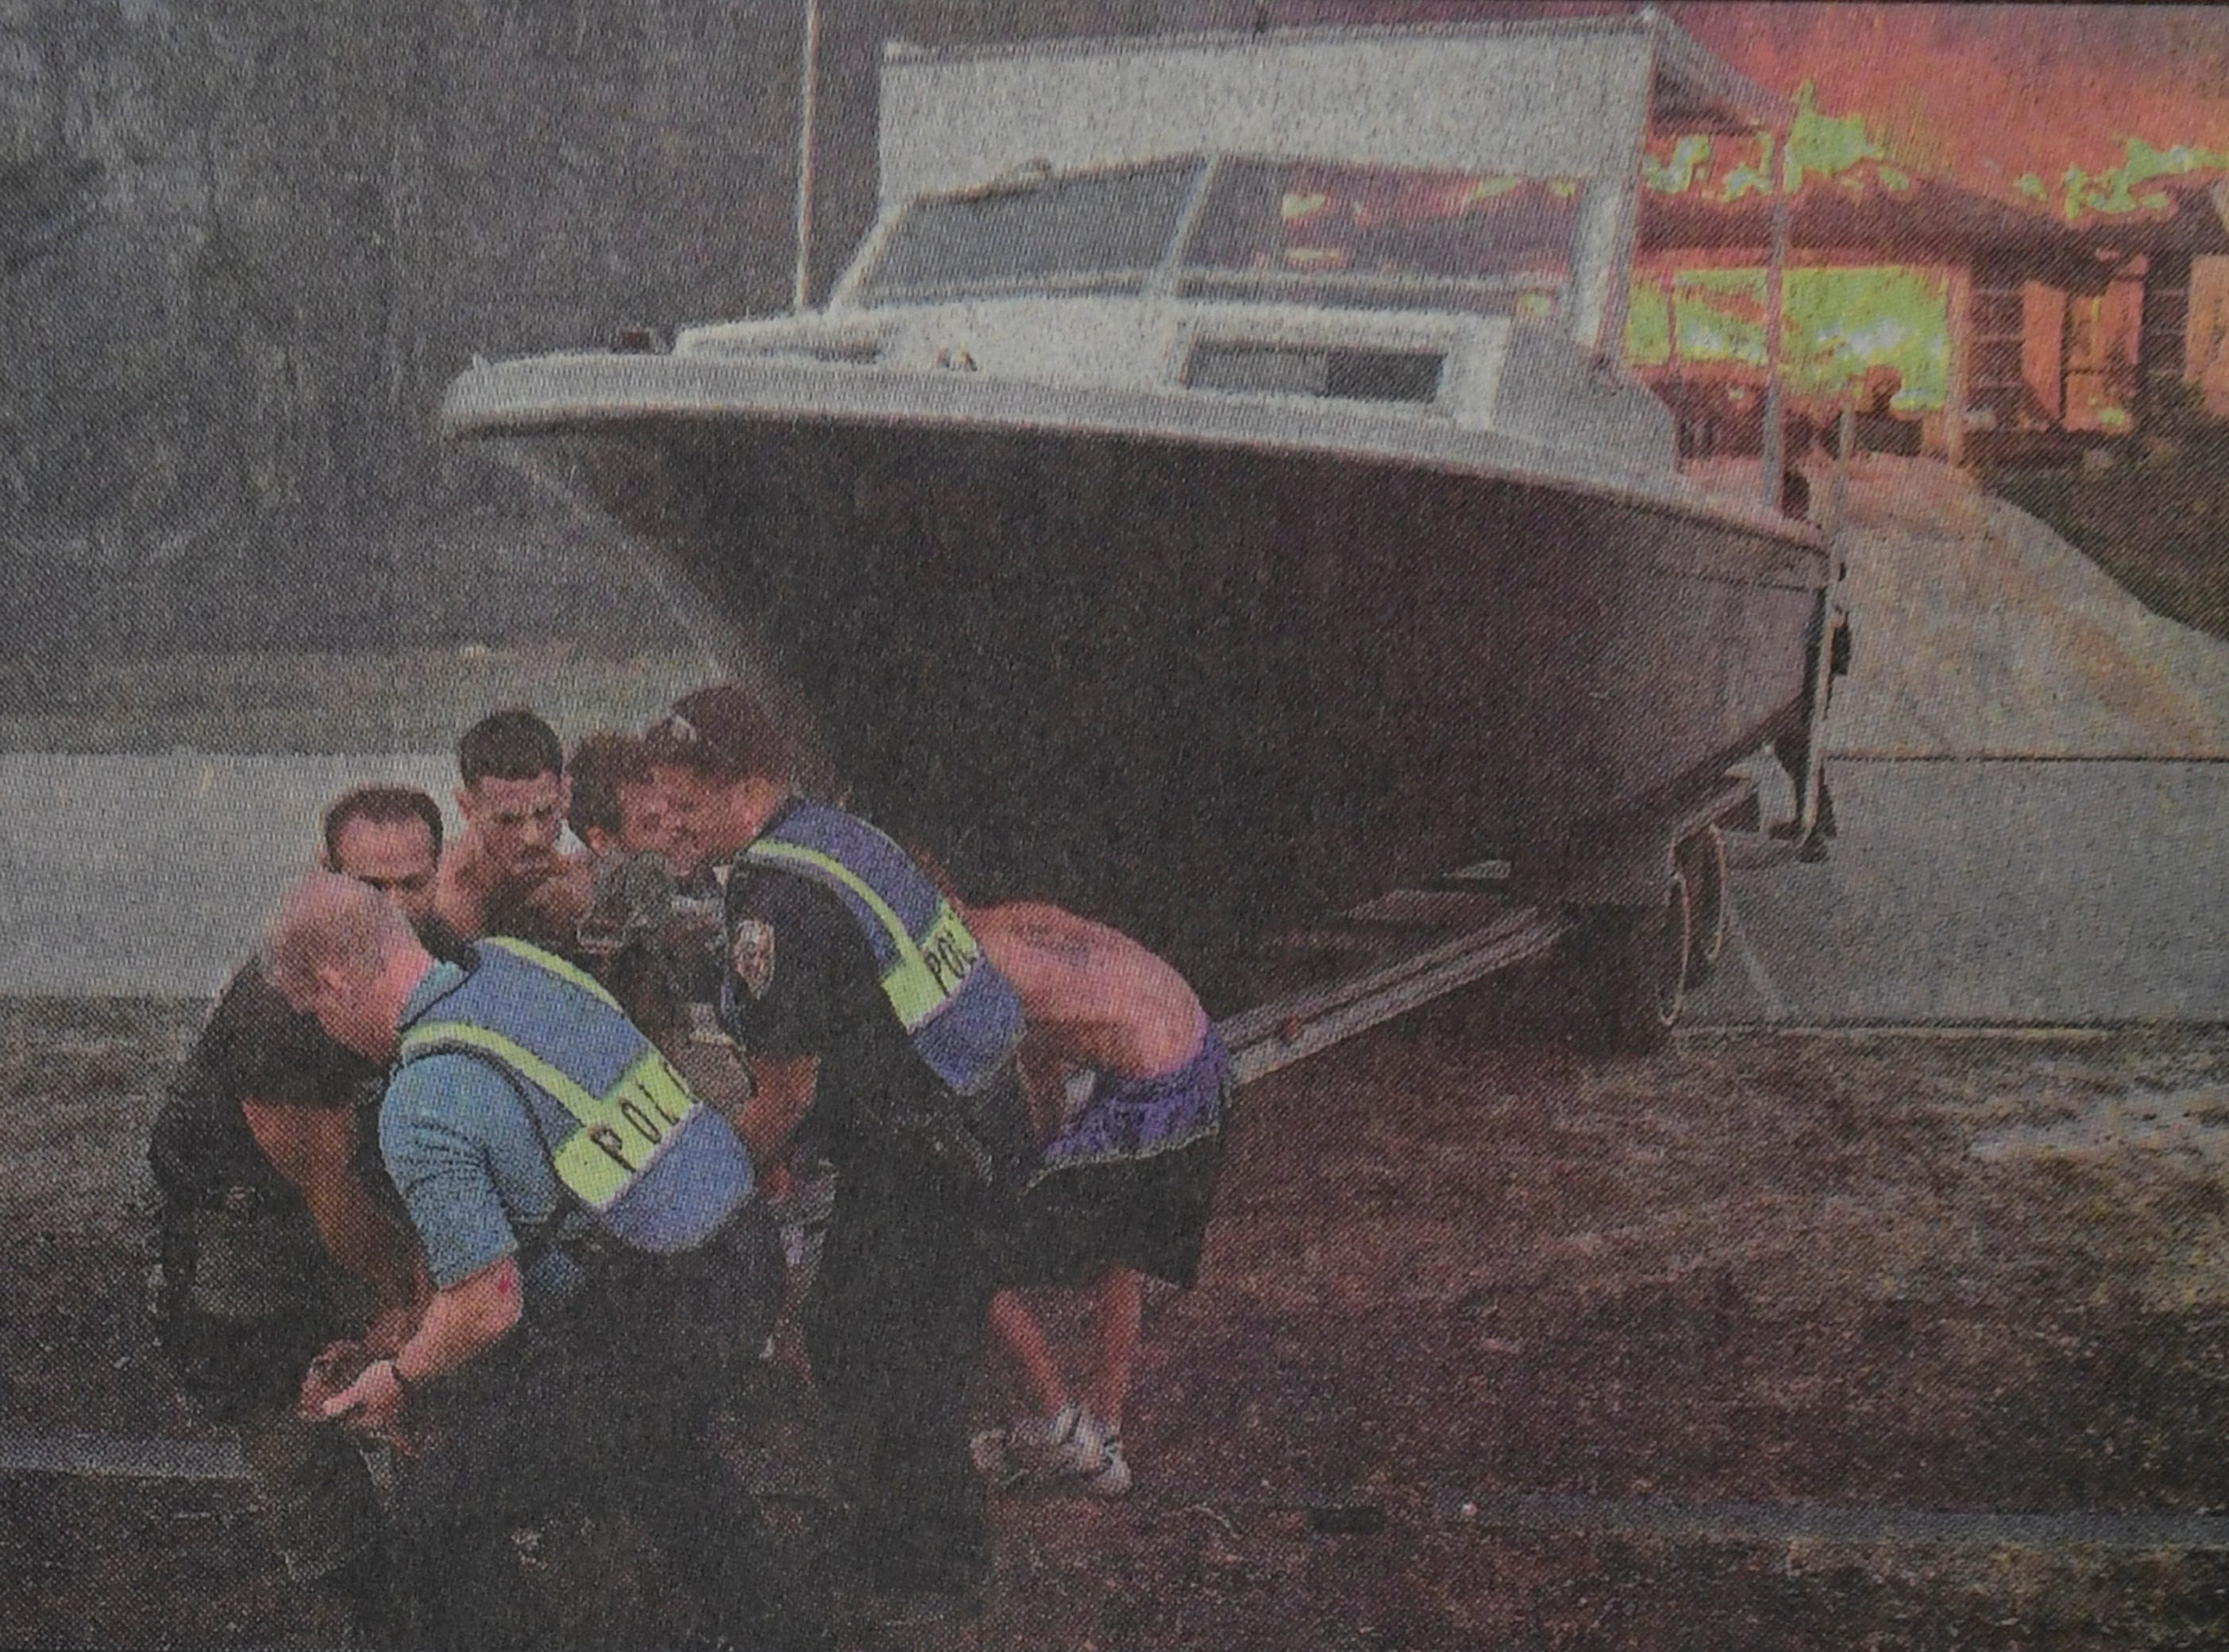 Port St. Lucie police officers and neighbors remove a boat from the driveway of a burning home on Grandberry Street April 15, 1999, in Port St. Lucie.